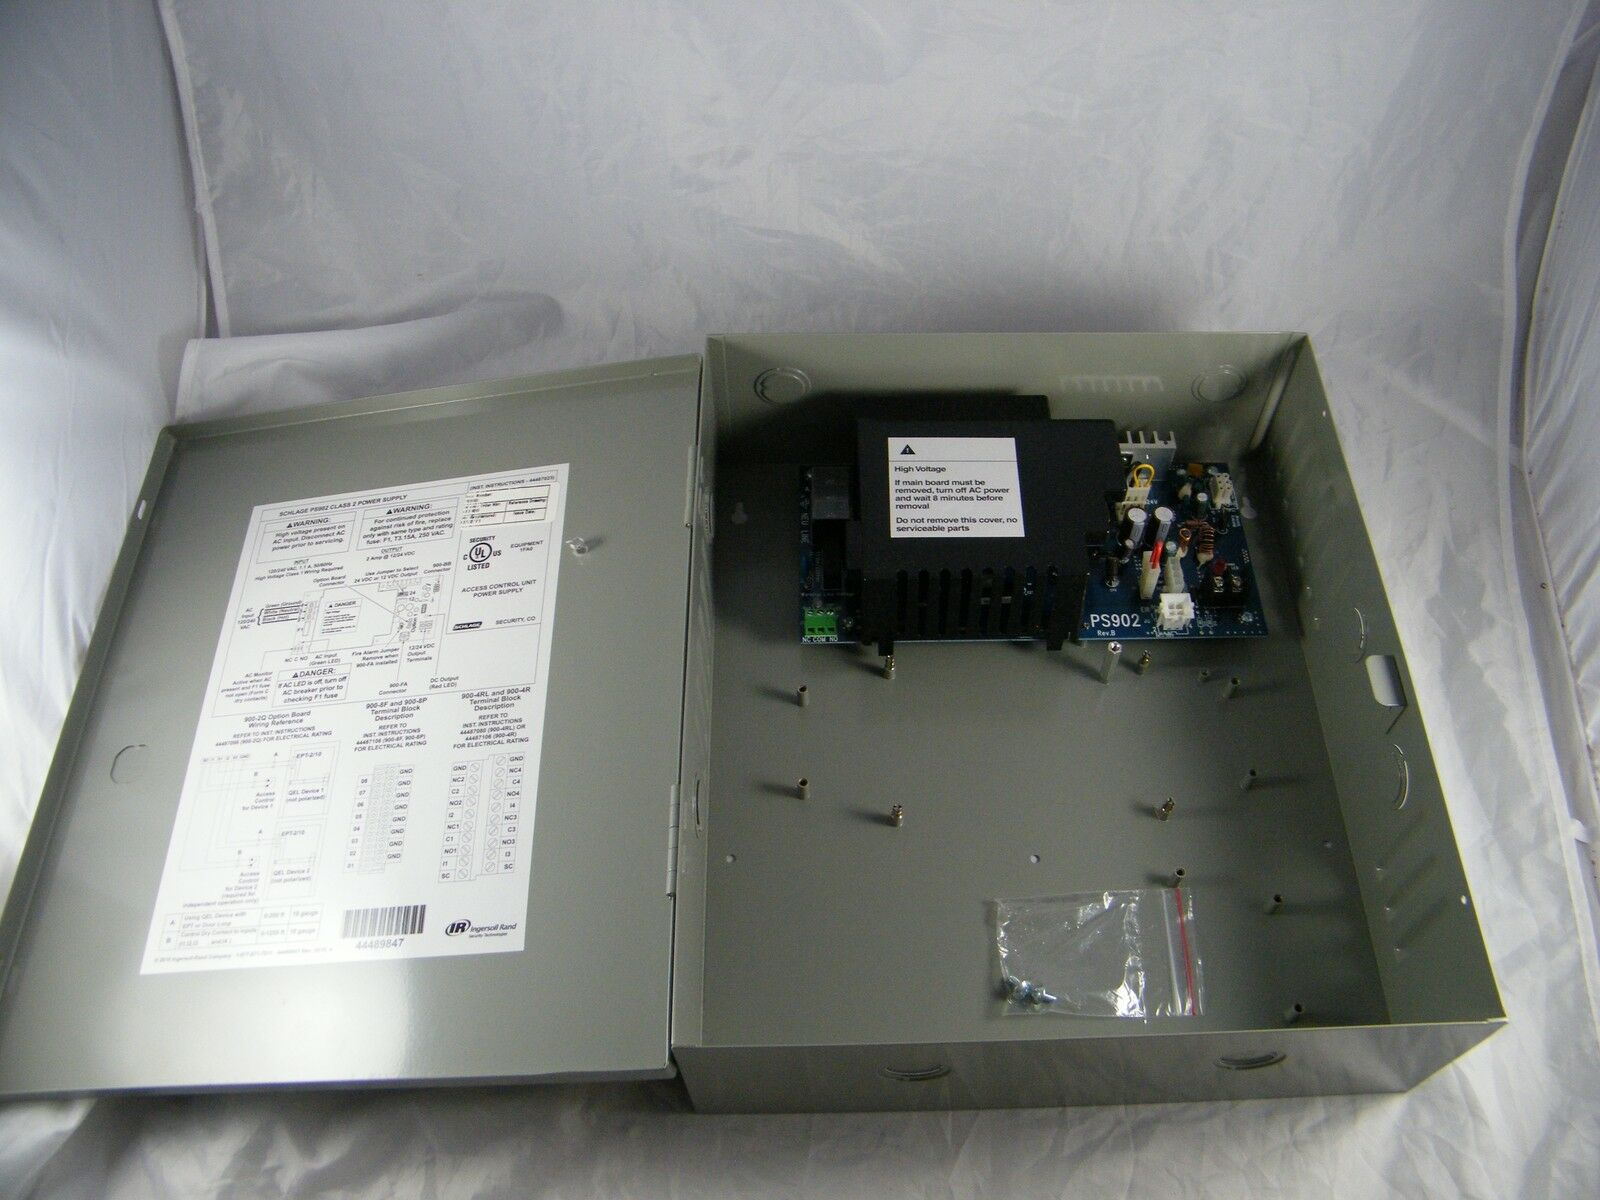 Ps902 Power Supply Wiring Diagram Ps90 Schlage Allegion 2a 4448947 Ebay On Schematics